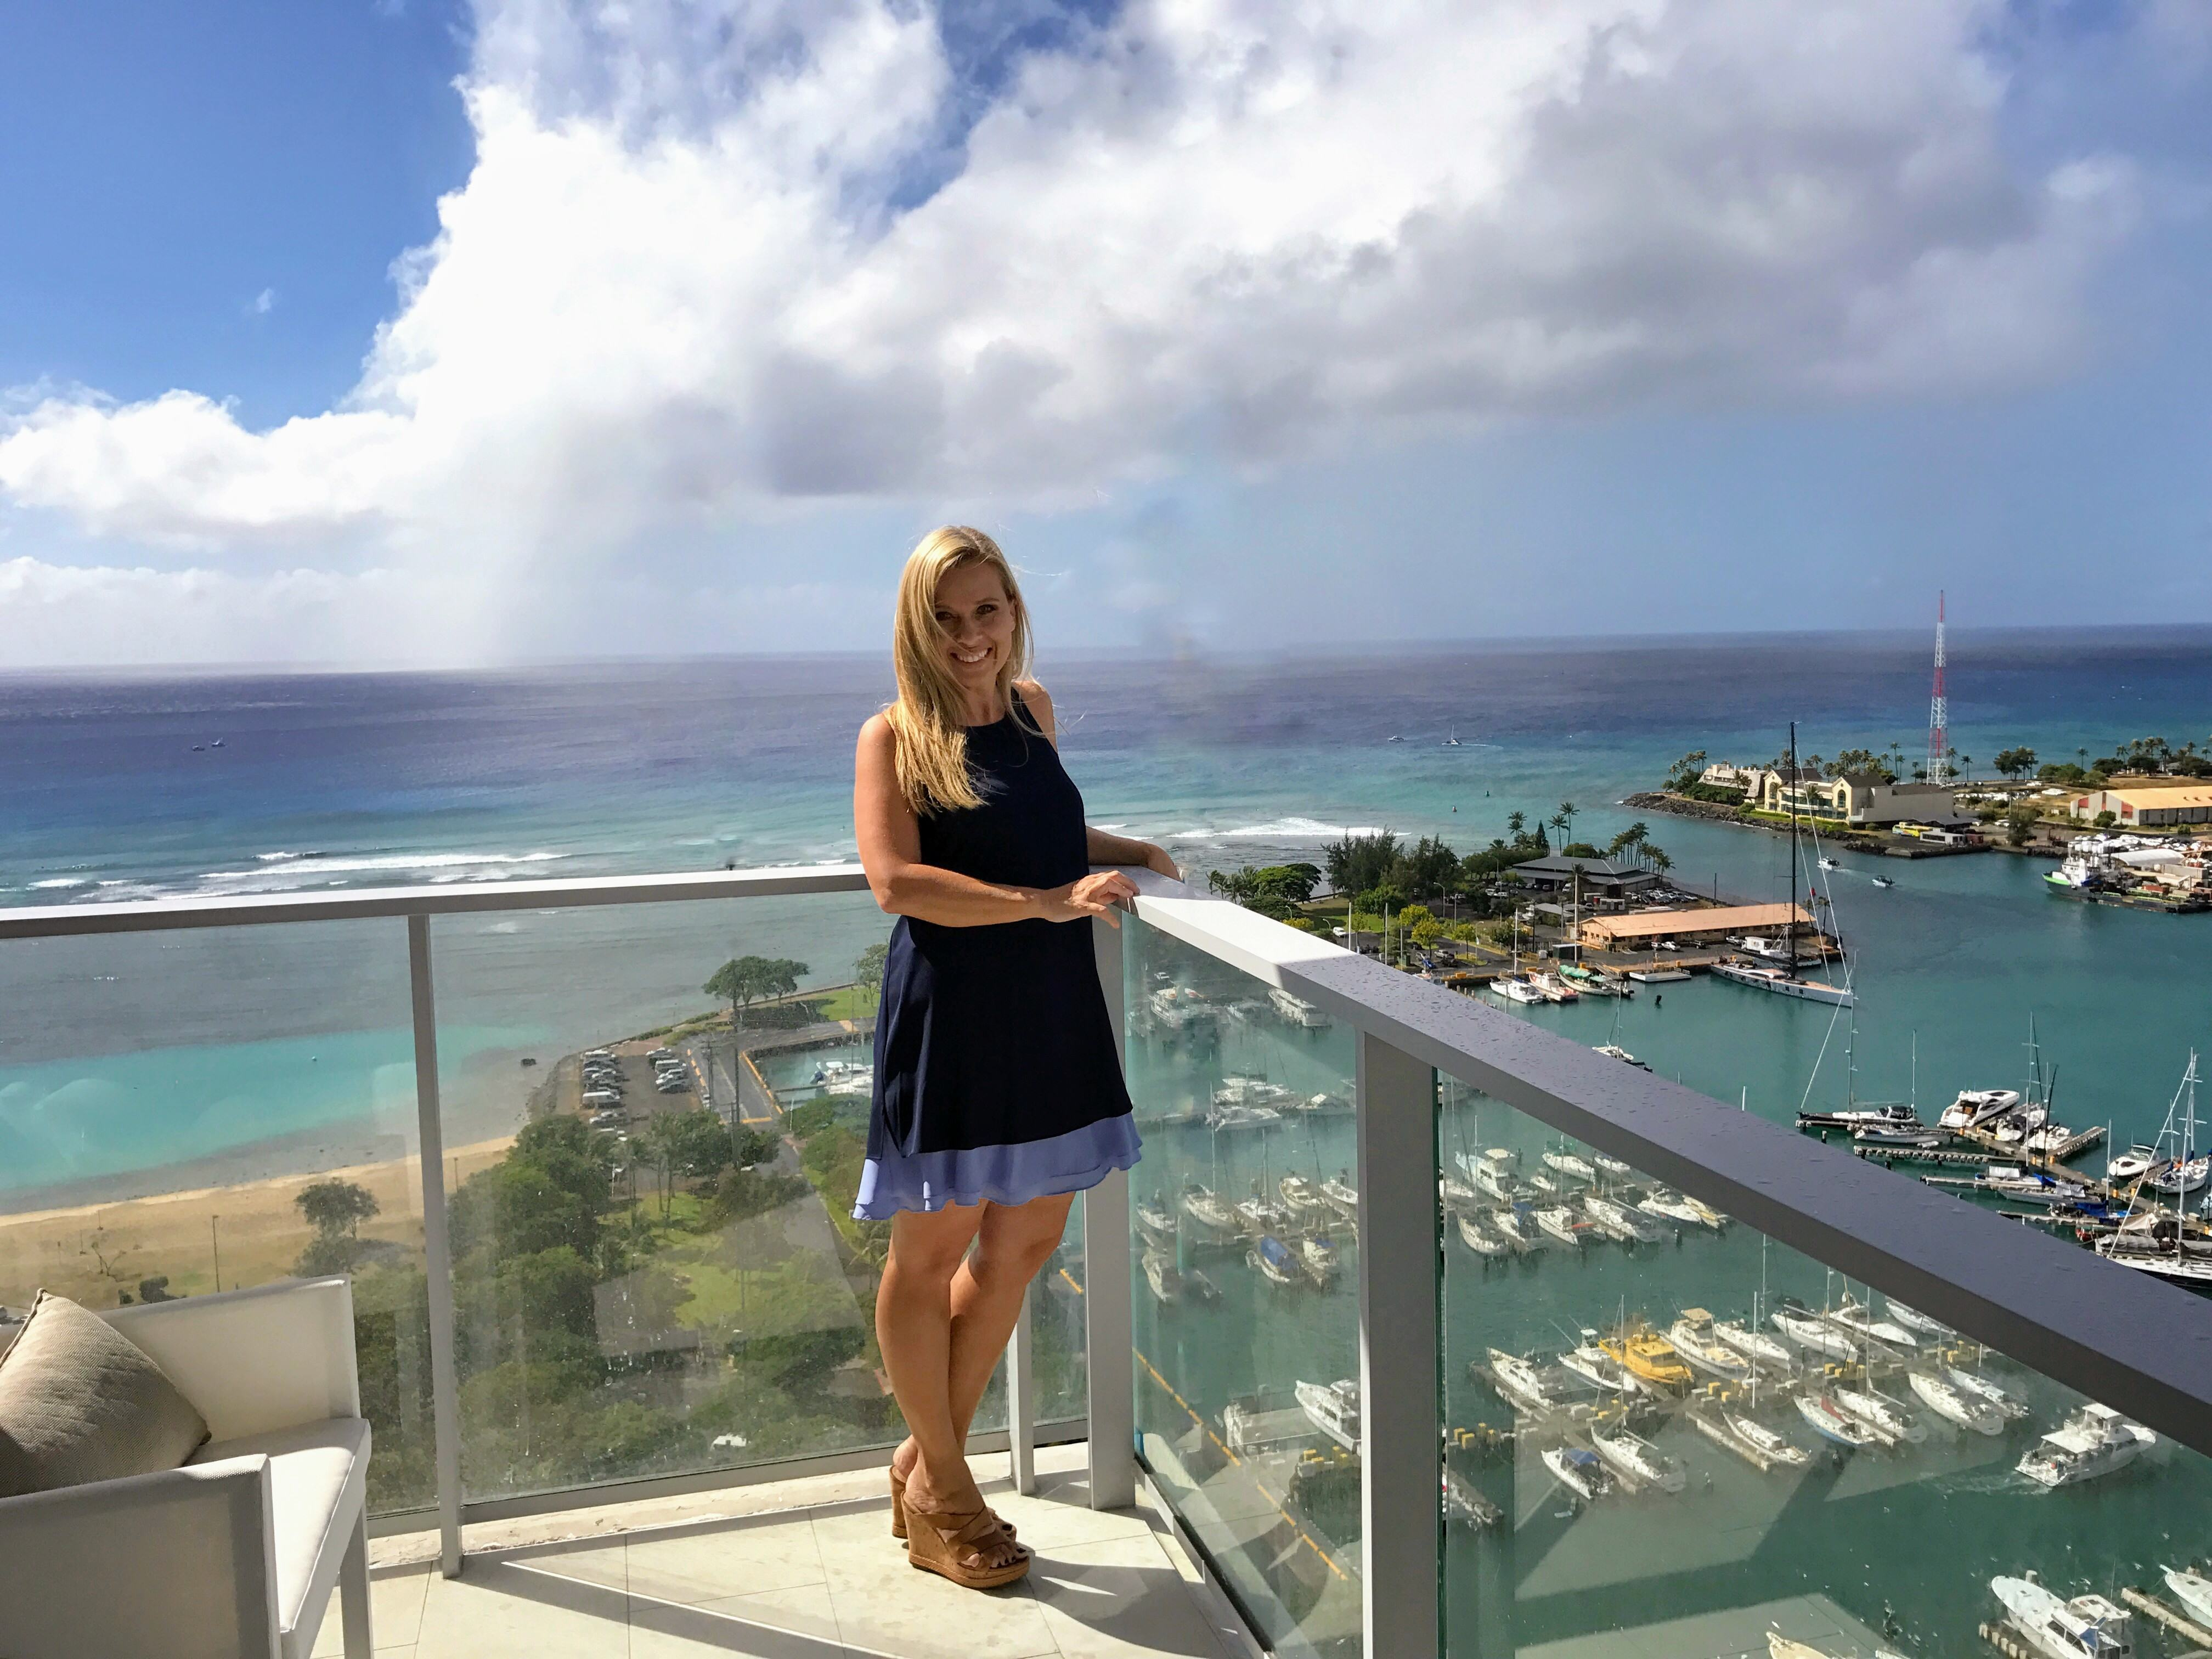 Kinga Mills at a showing in the heart of Honolulu's urban redevelopment, enjoying the ocean views.